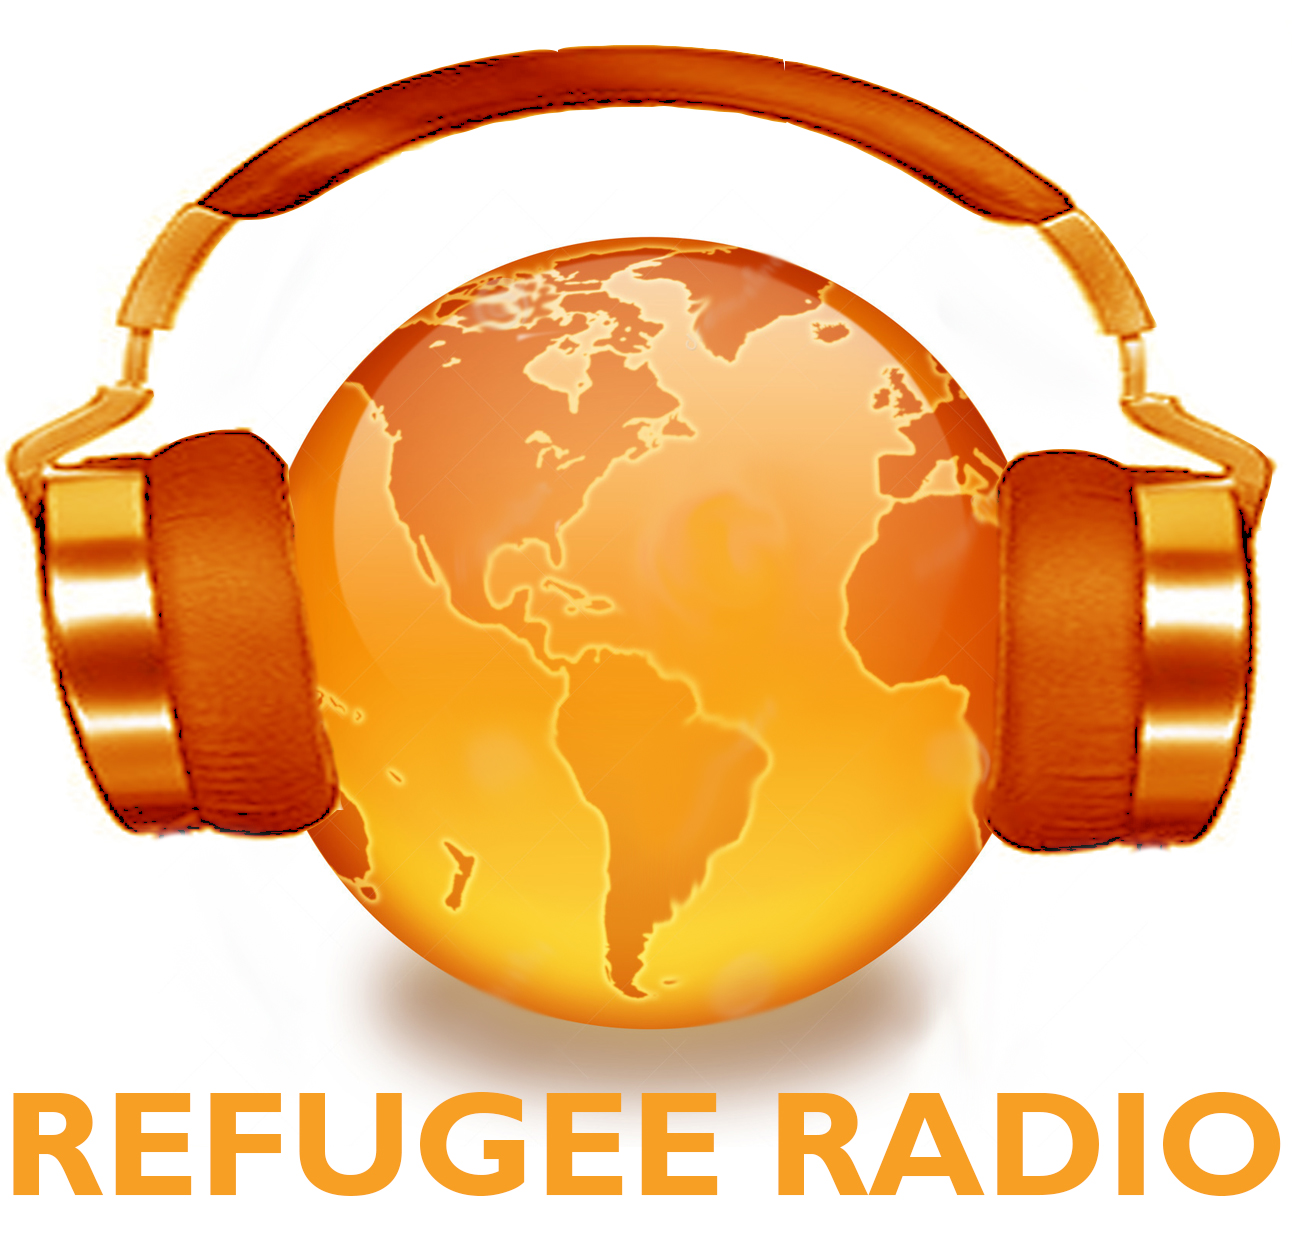 refugeeradio.org.uk